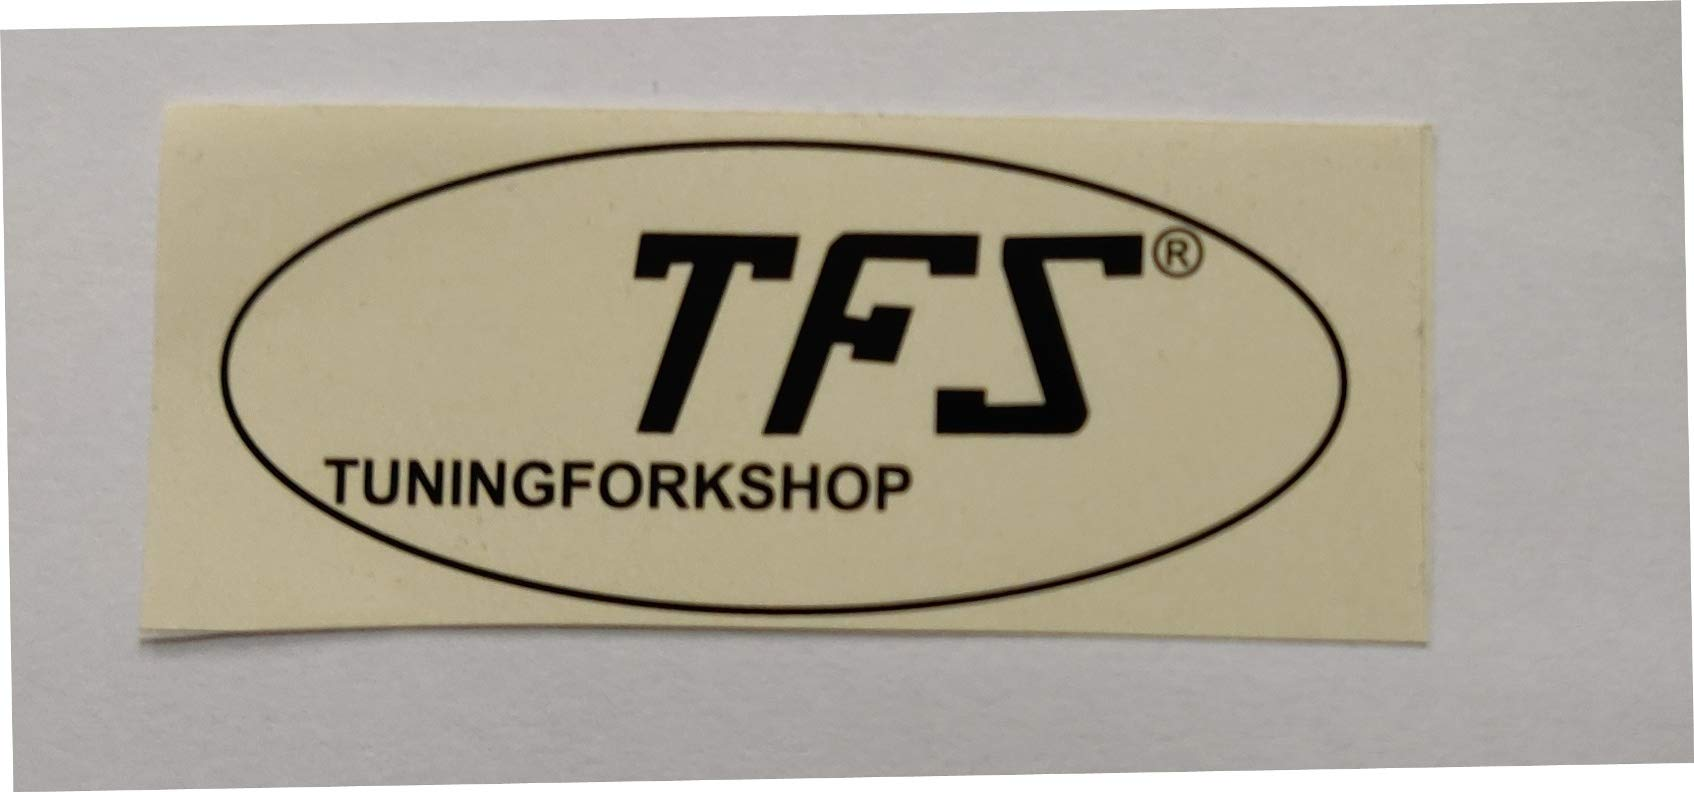 TFS Tuningforkshop Cellulite Reduction Weighted Tuning Fork for Healing with Activator,Pouch& Free Shipping by Tuningforkshop